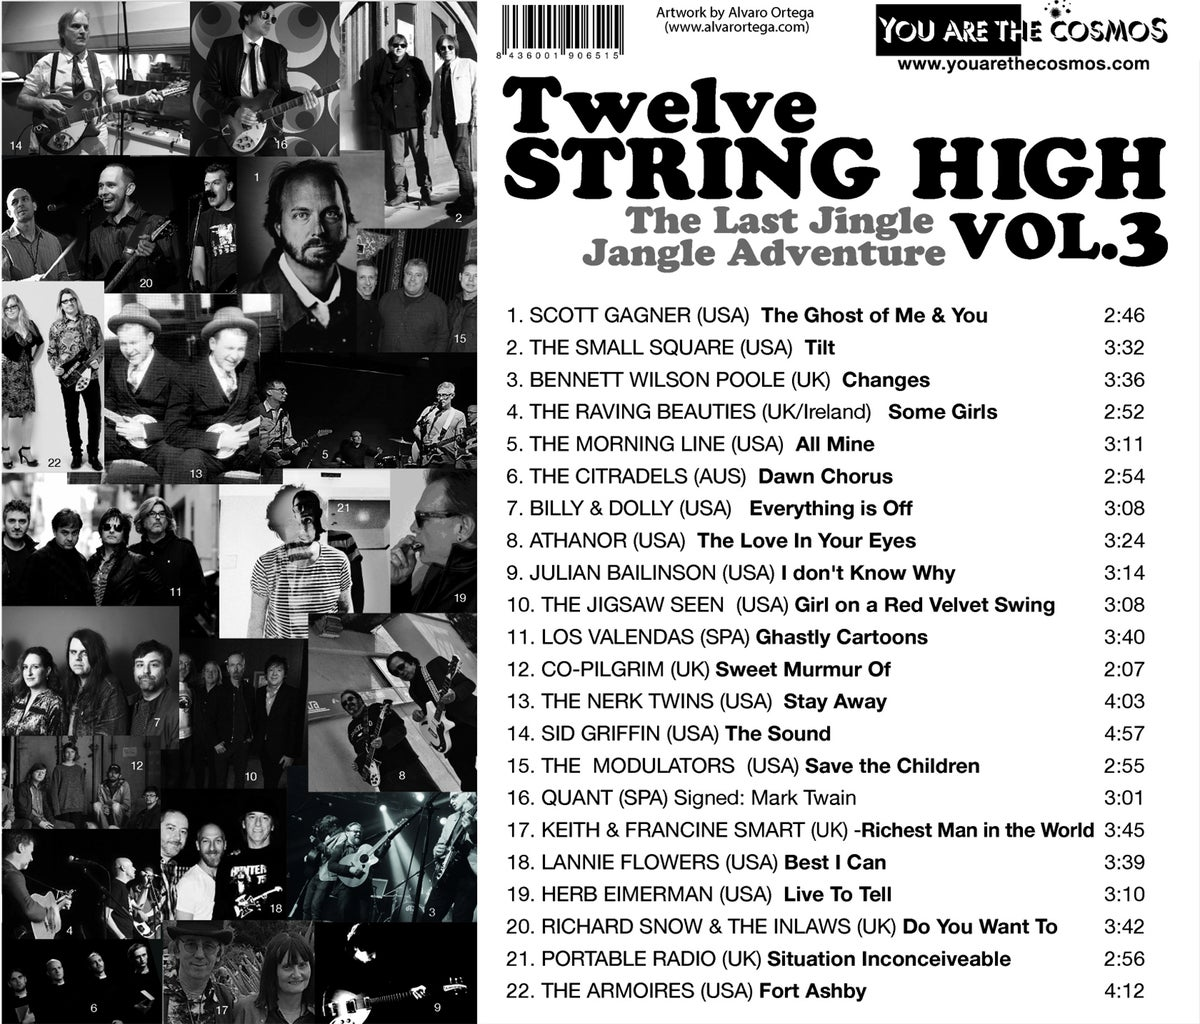 Image of TWELVE STRING HIGH on CD